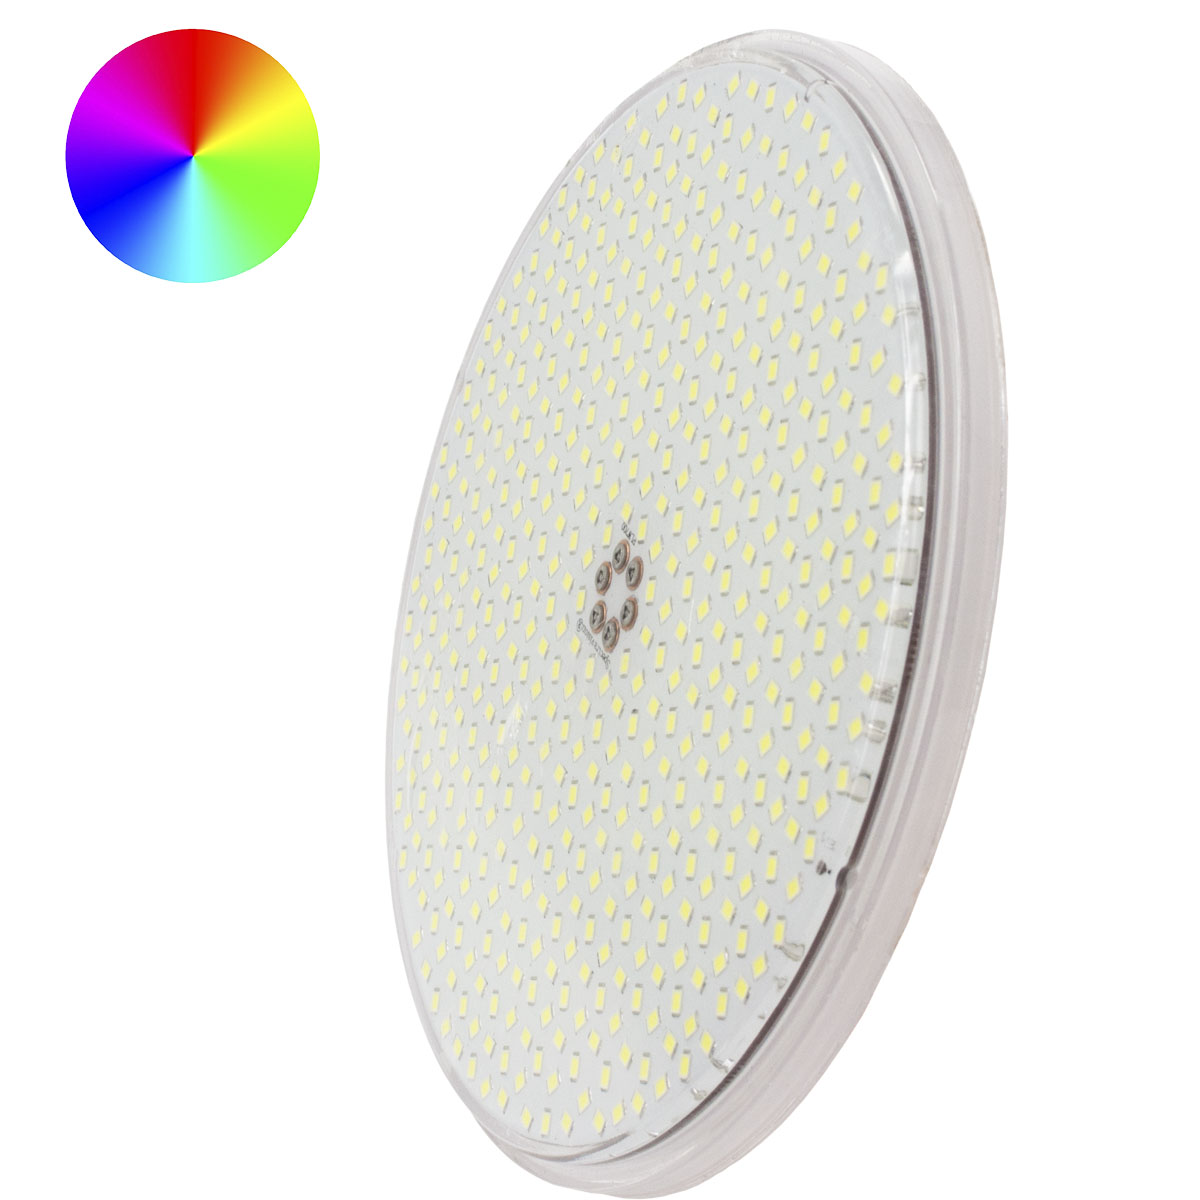 Moonlight ultra platte vorm zwembadlamp 21W RGB